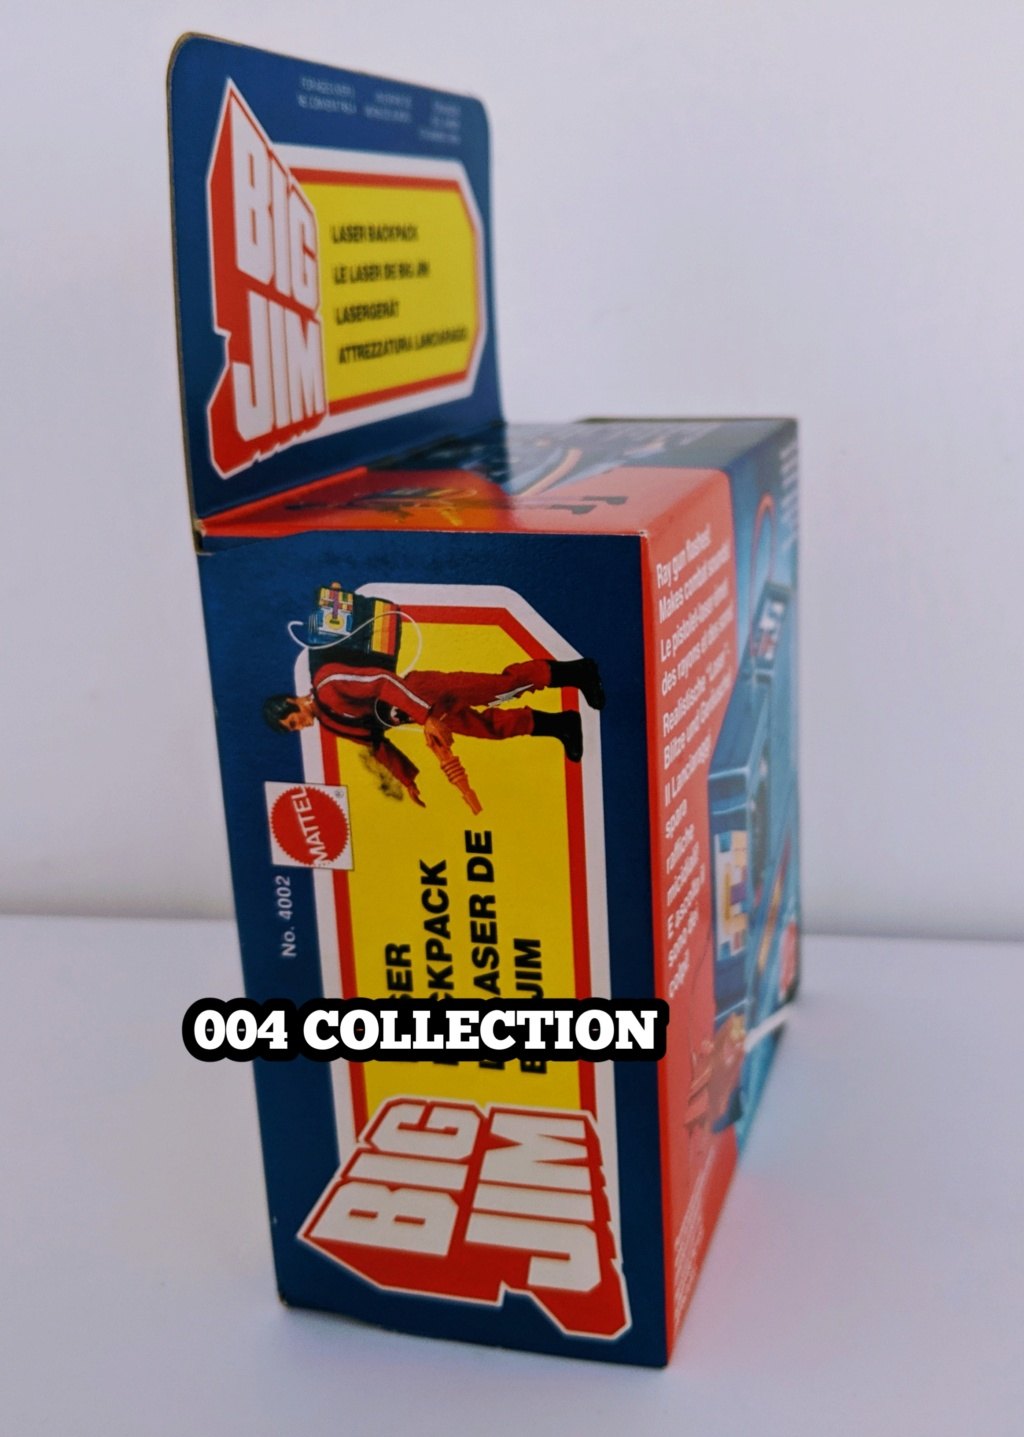 004 COLLECTION 20210940